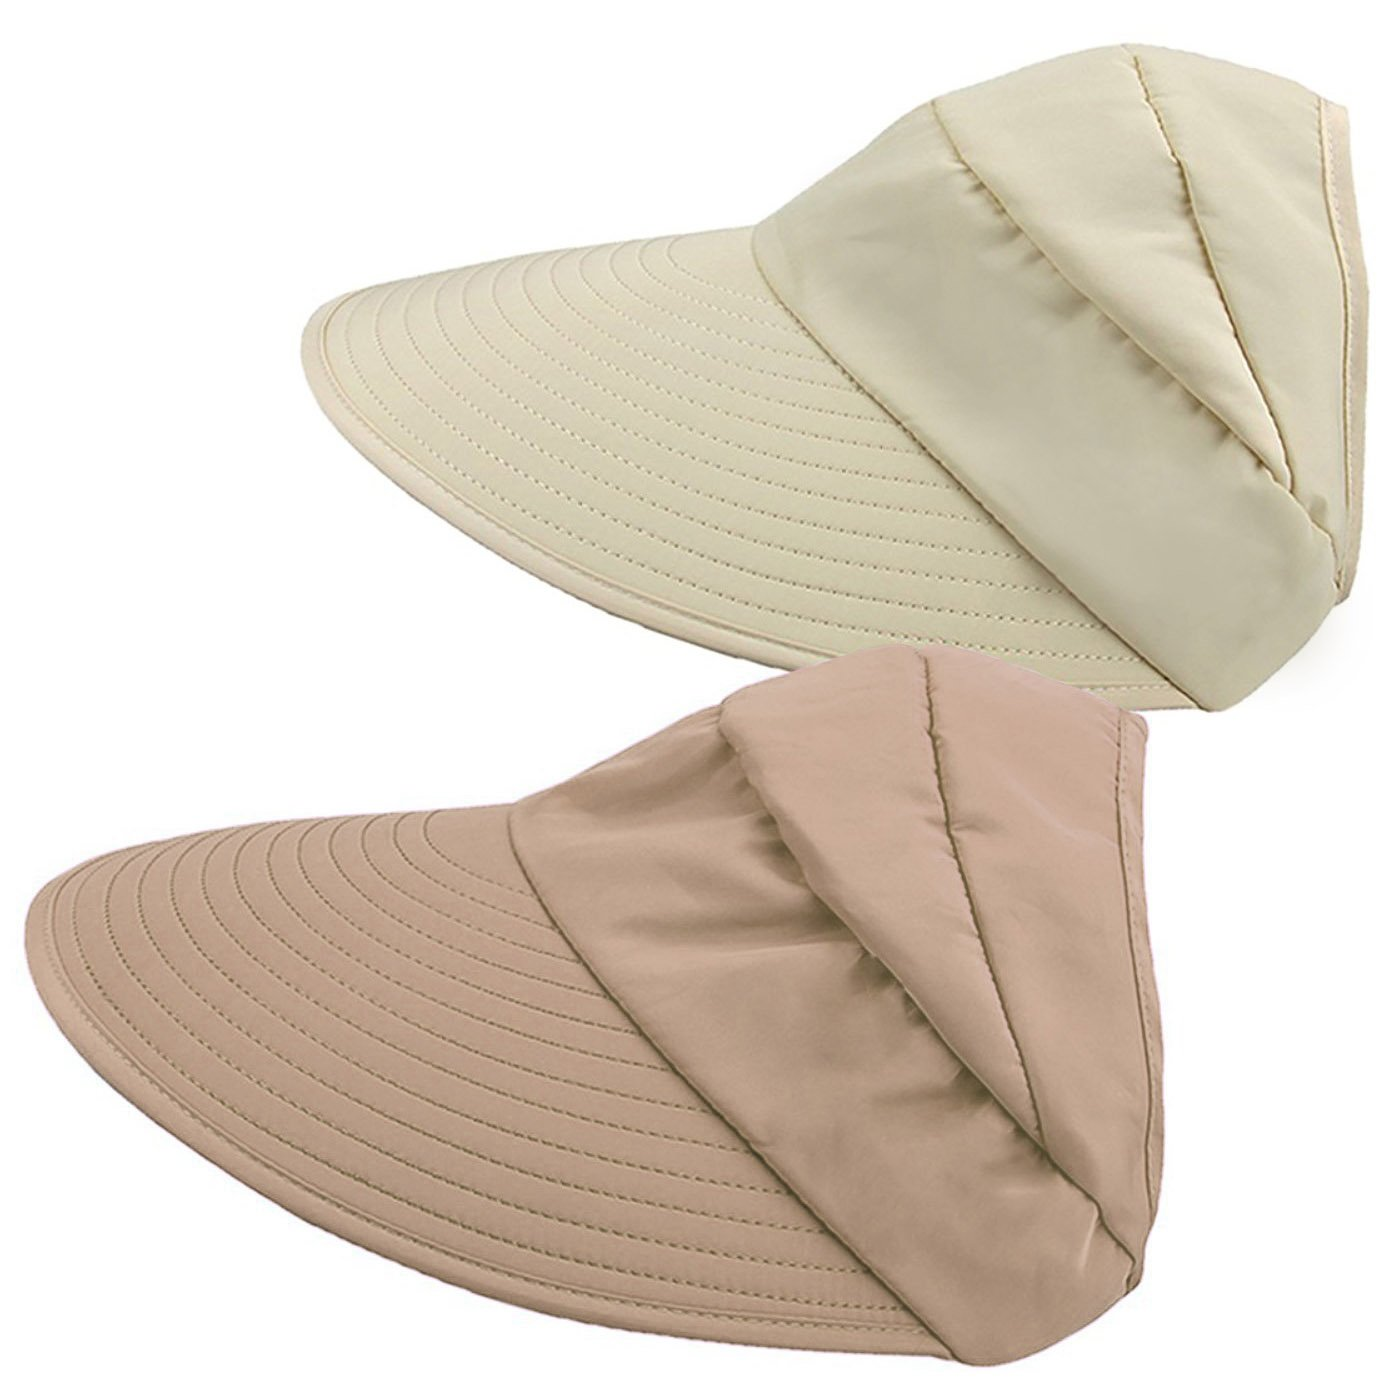 HINDAWI Sun Hats for Women Wide Brim UV Protection Sun Hat Summer Beach Packable Visor Beige